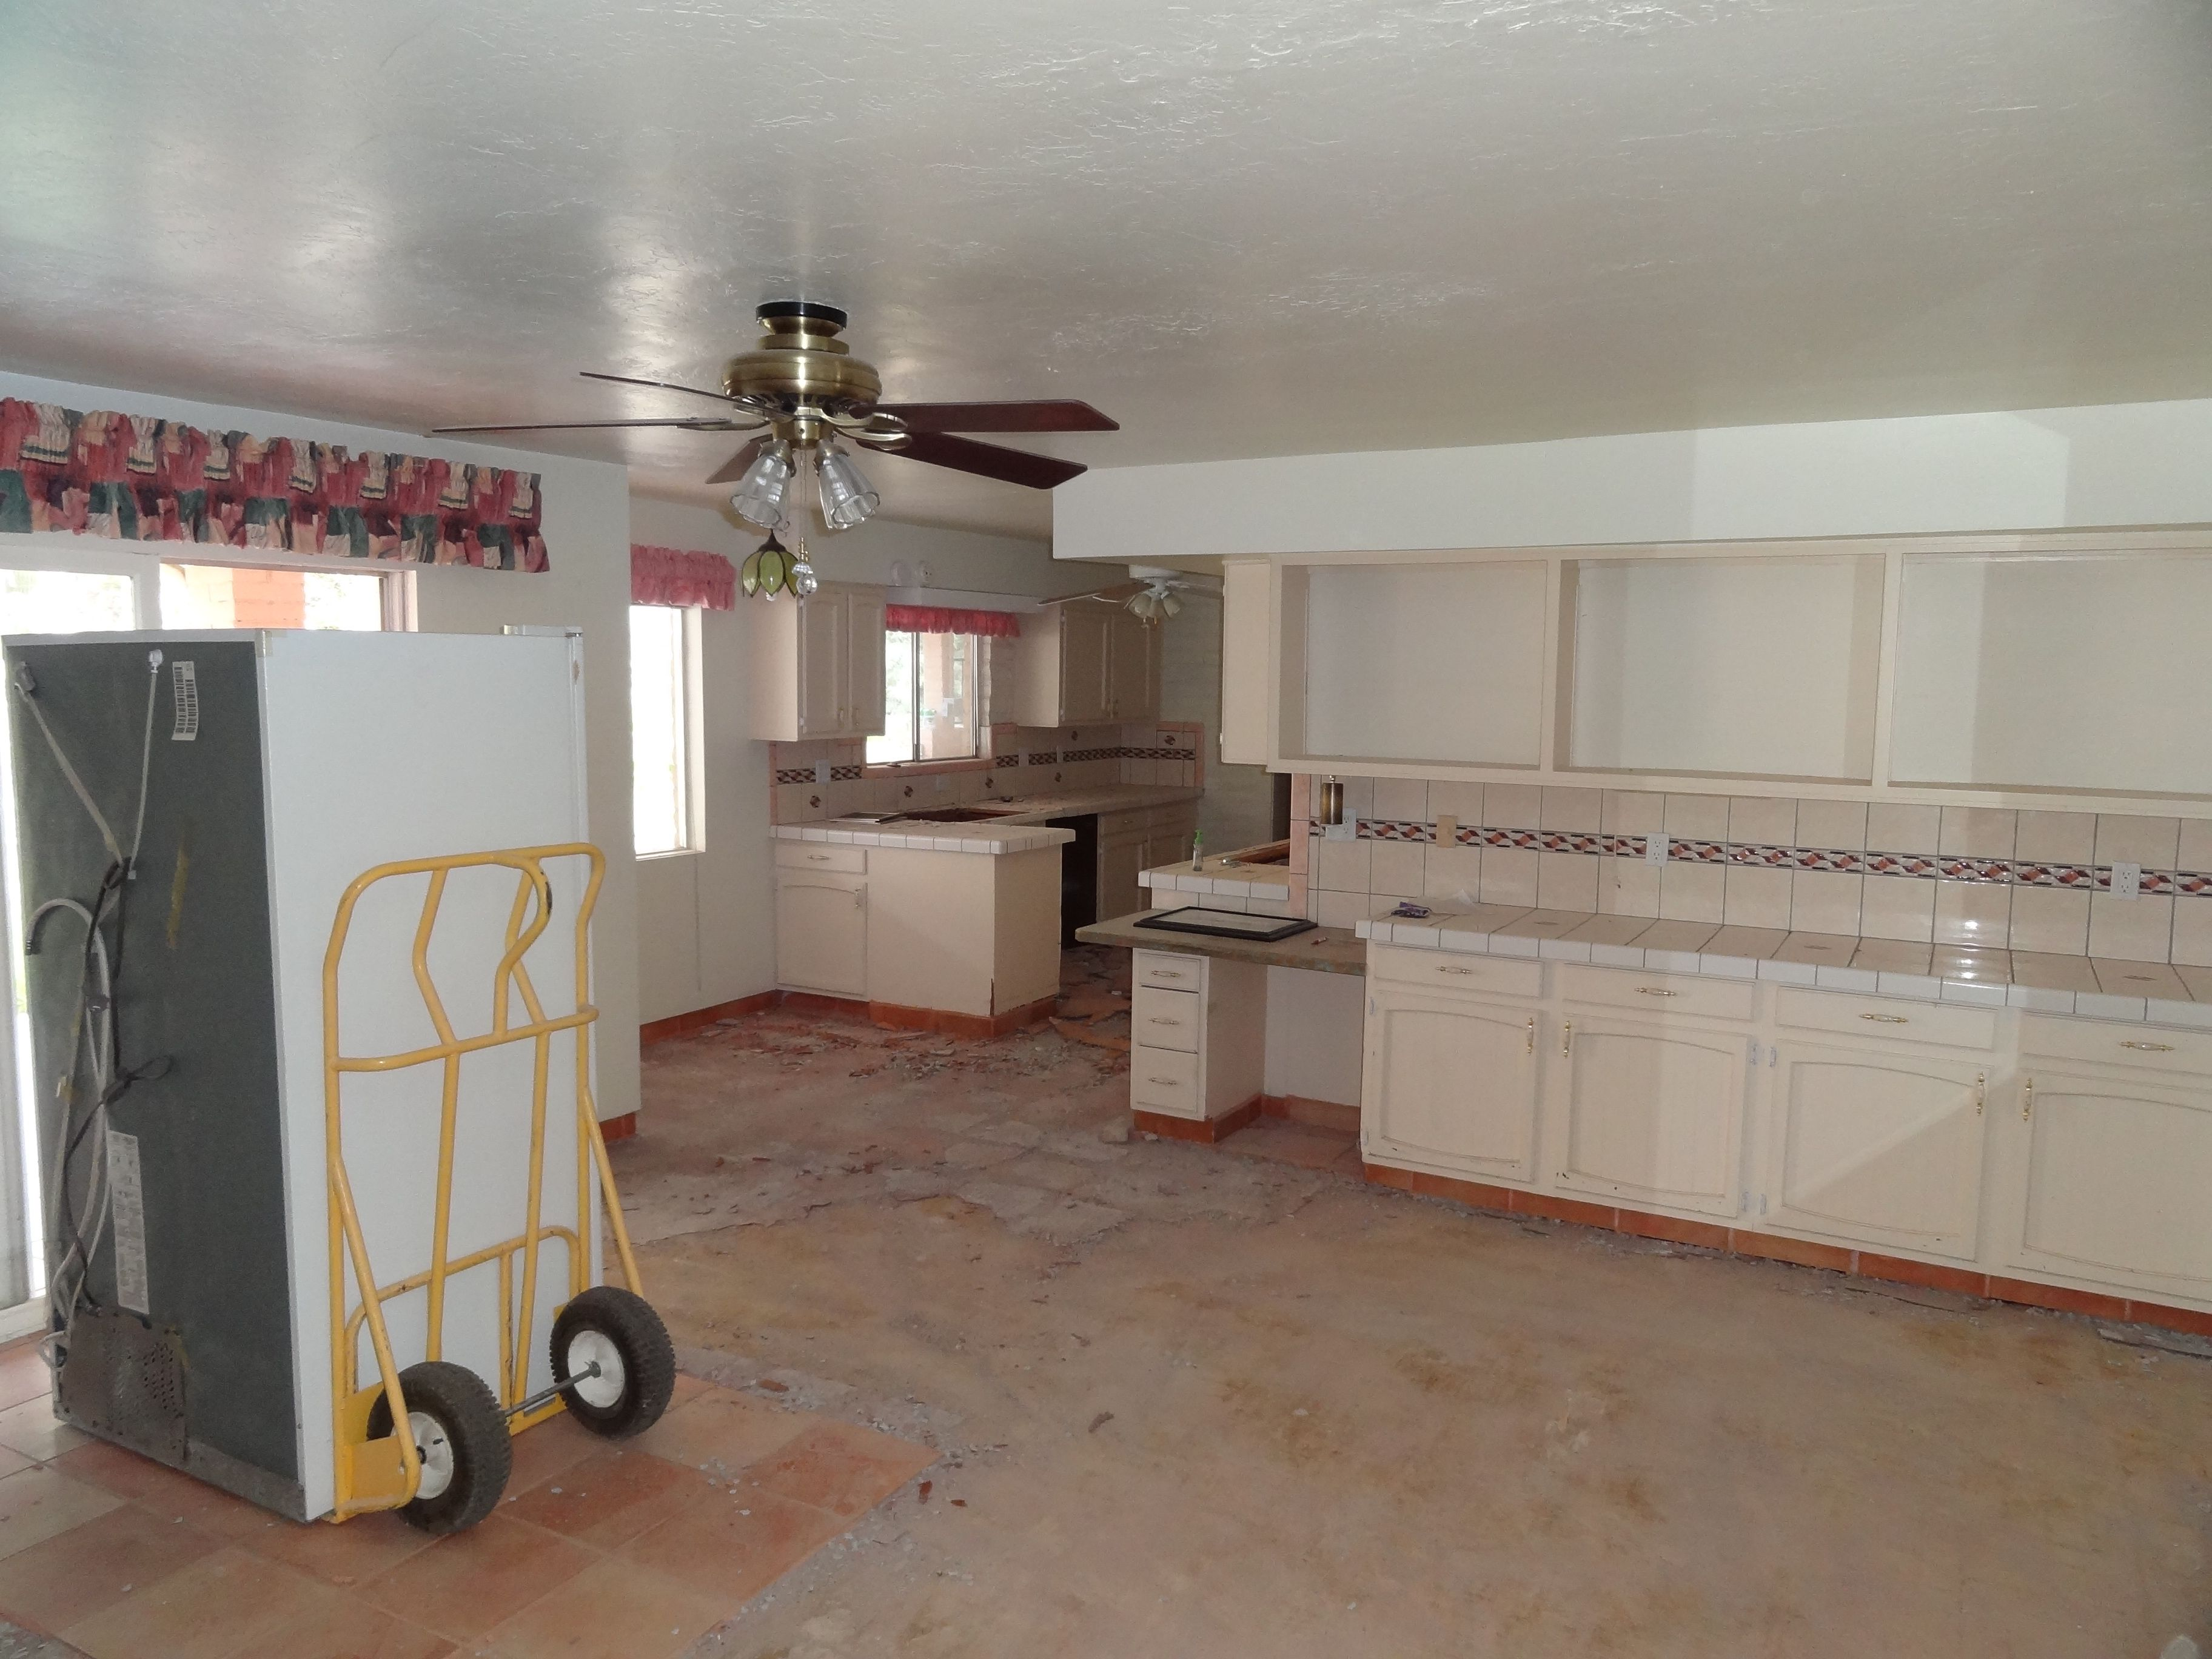 Before kitchen remodel by Soloway Designs.